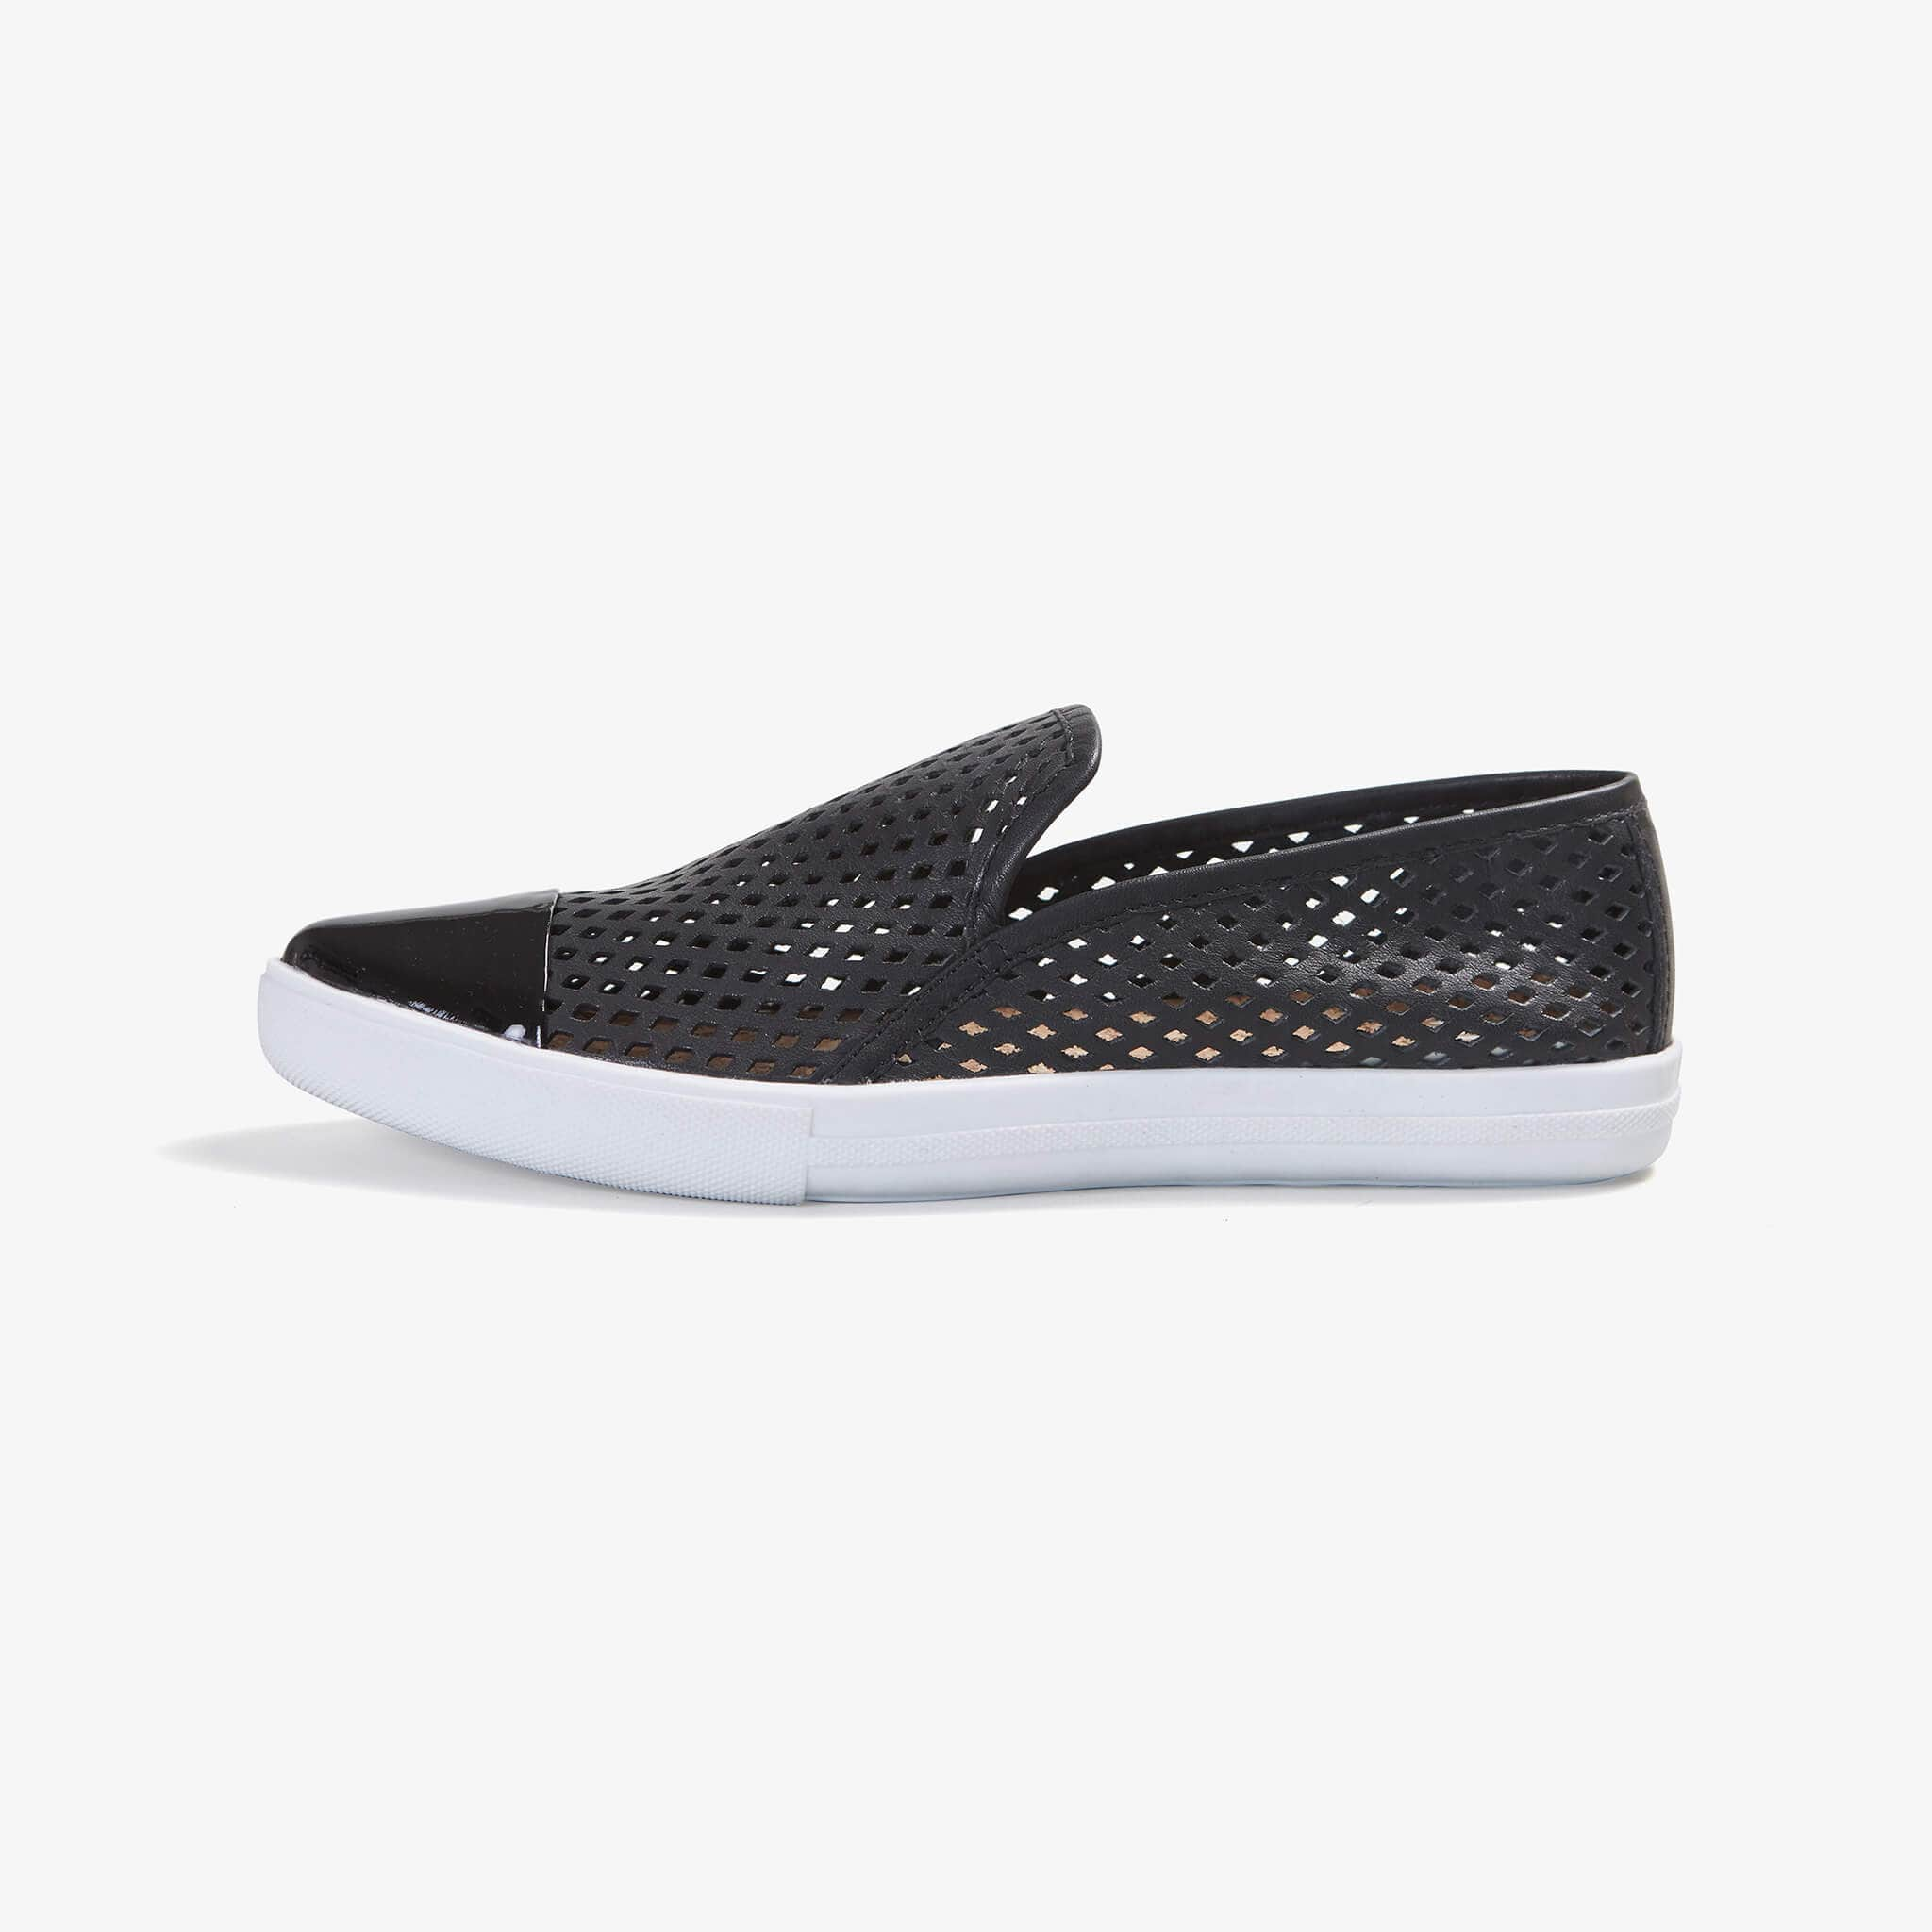 Jibs Slim Jet Black + Onyx Slip On Sneaker Flat Shoe Side